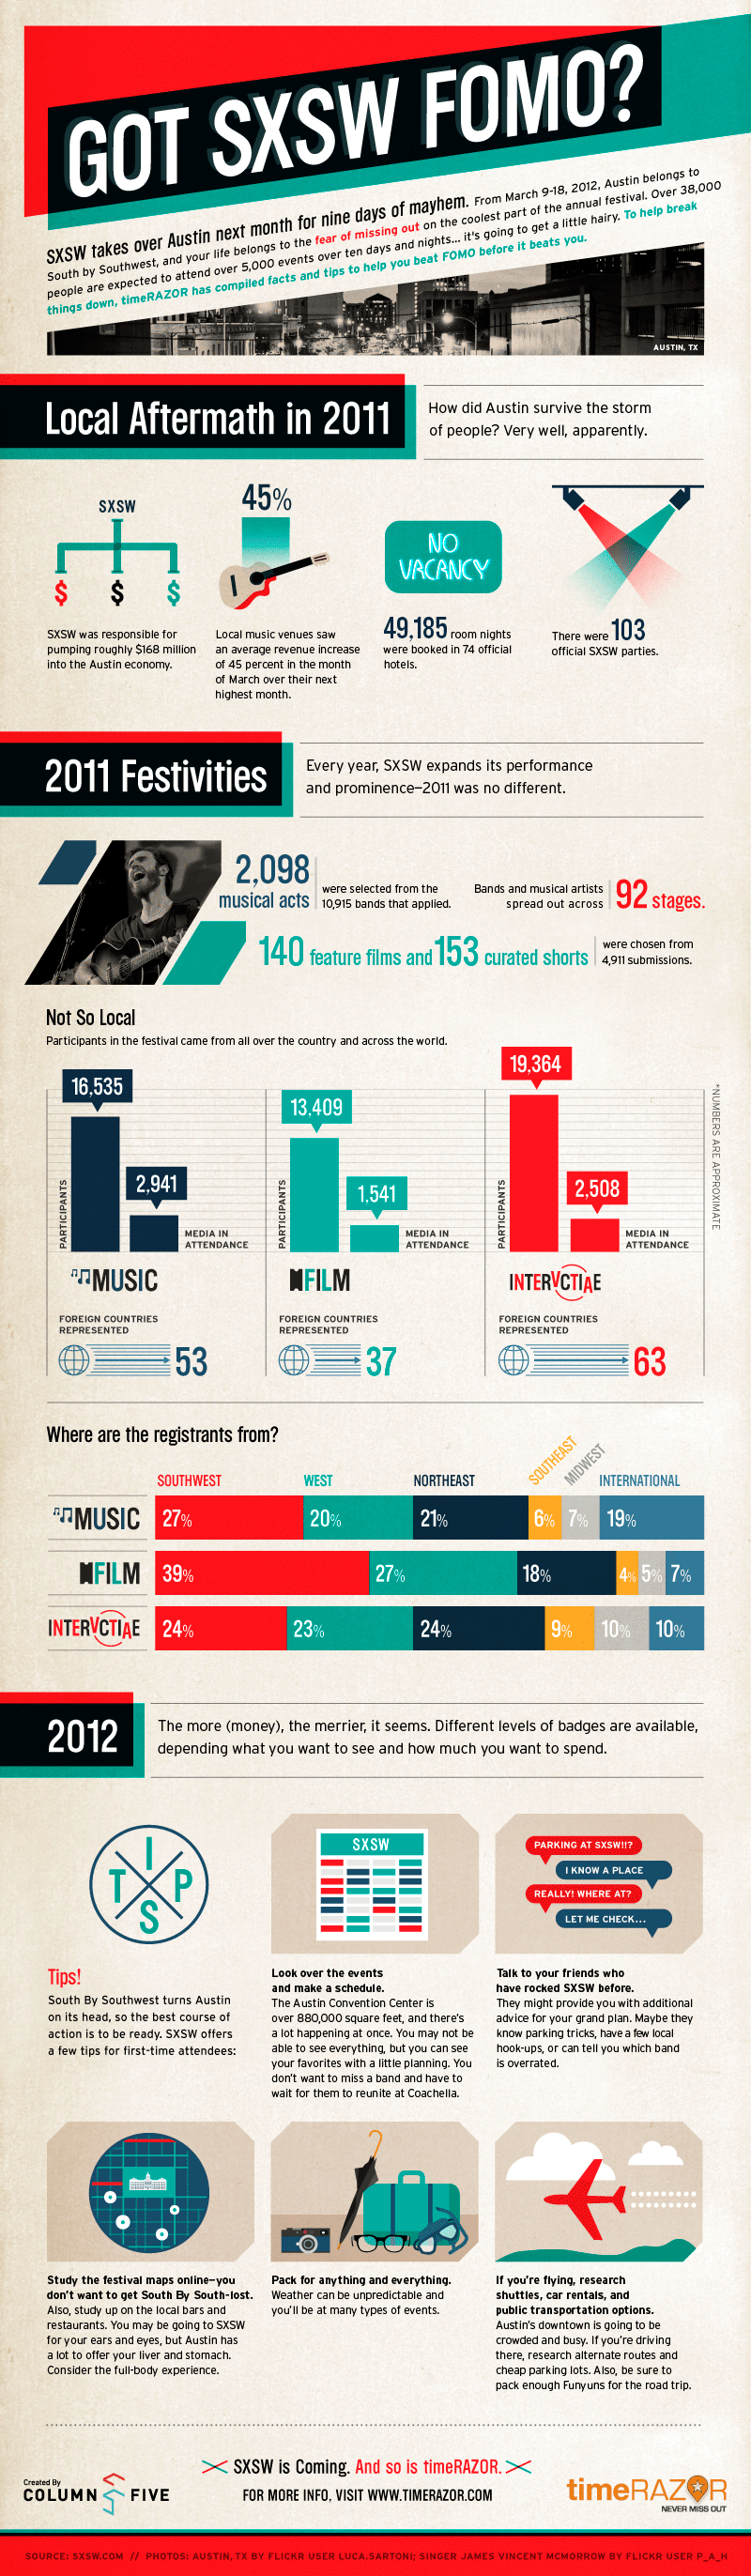 Infographic: Got SXSW FOMO?